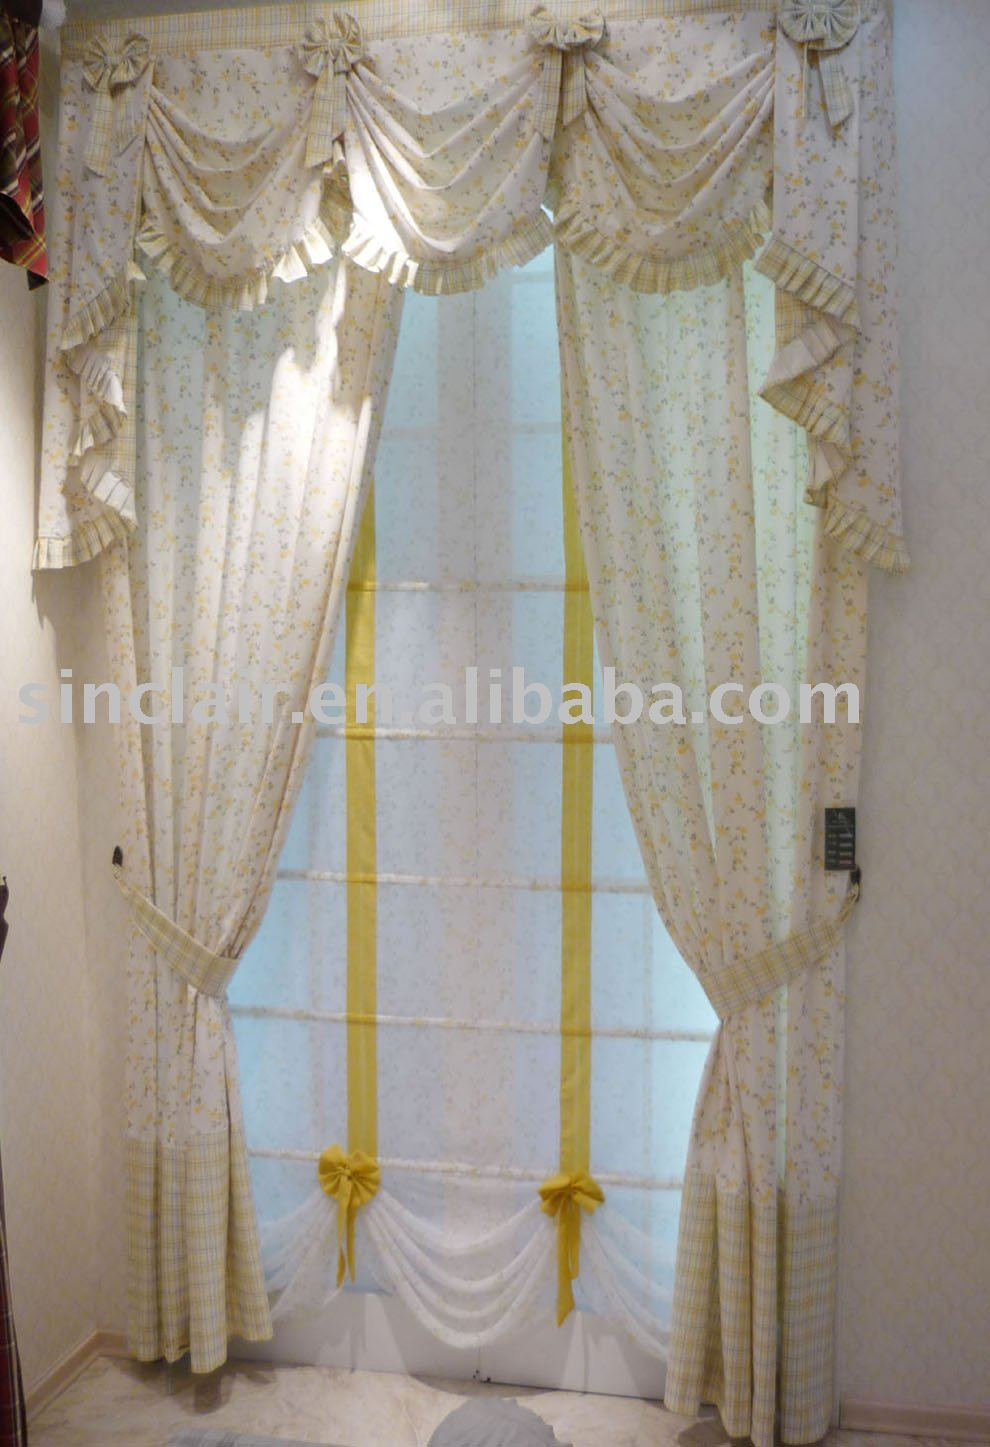 Between You And Me A Collection Of Swags And Valances